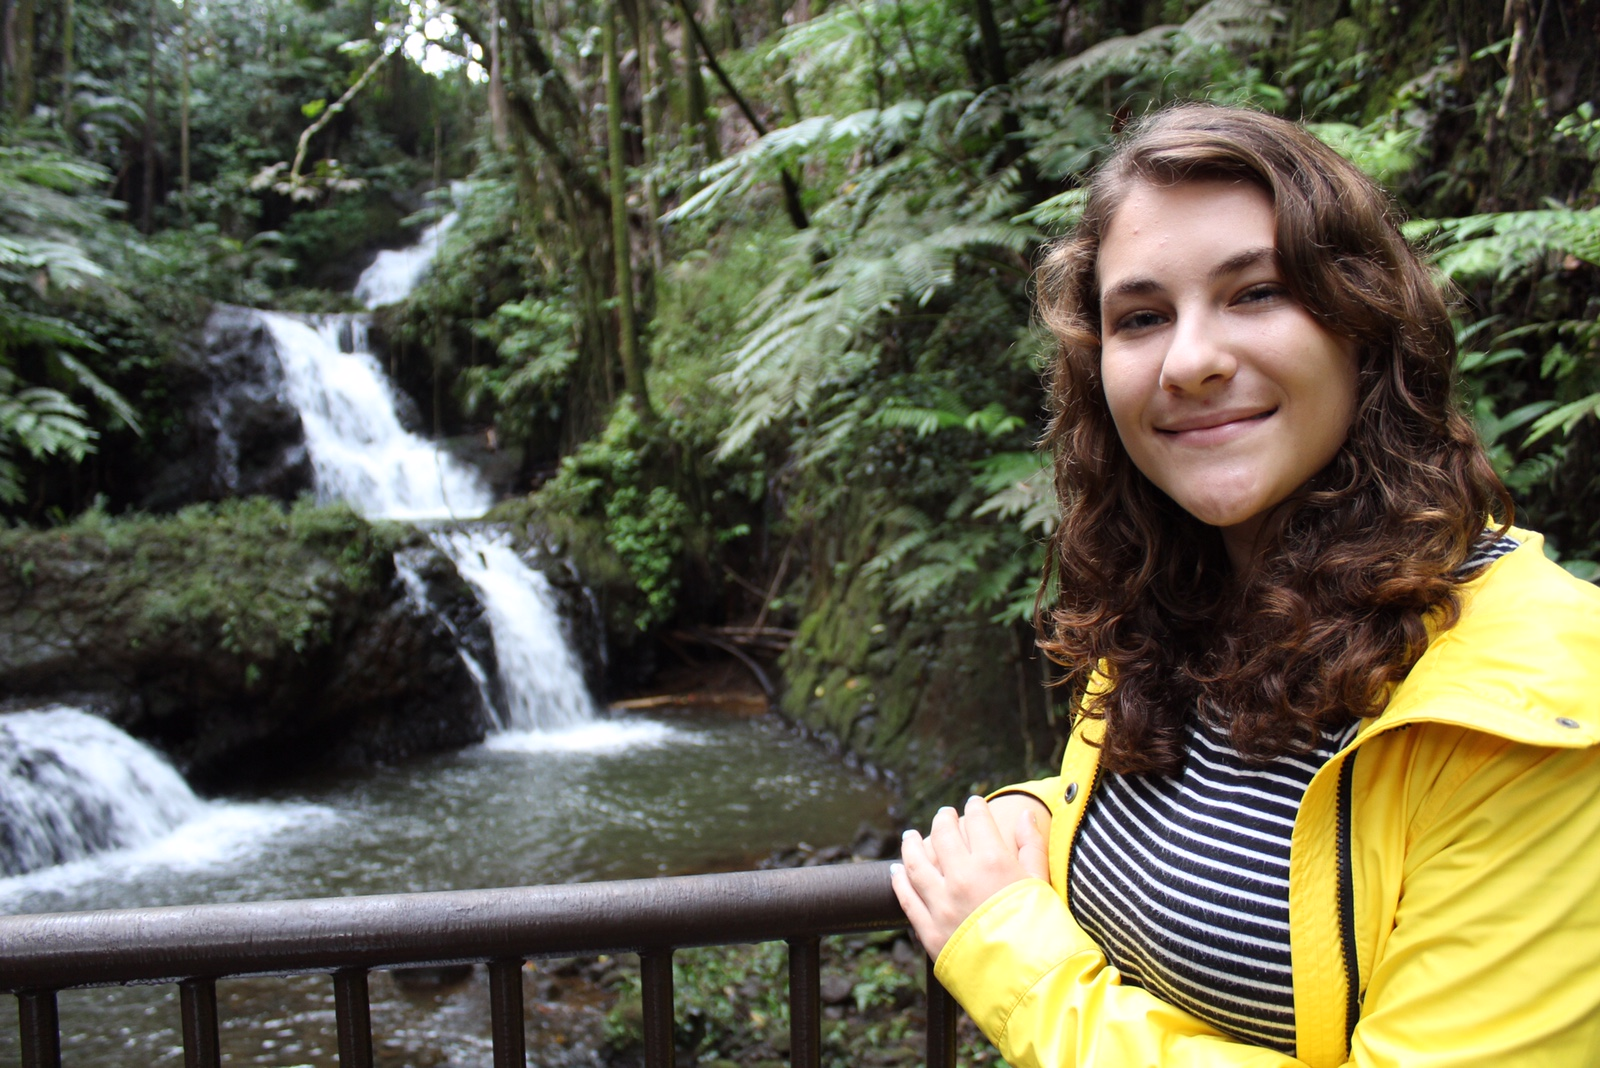 Gina smiling in front of a water fall